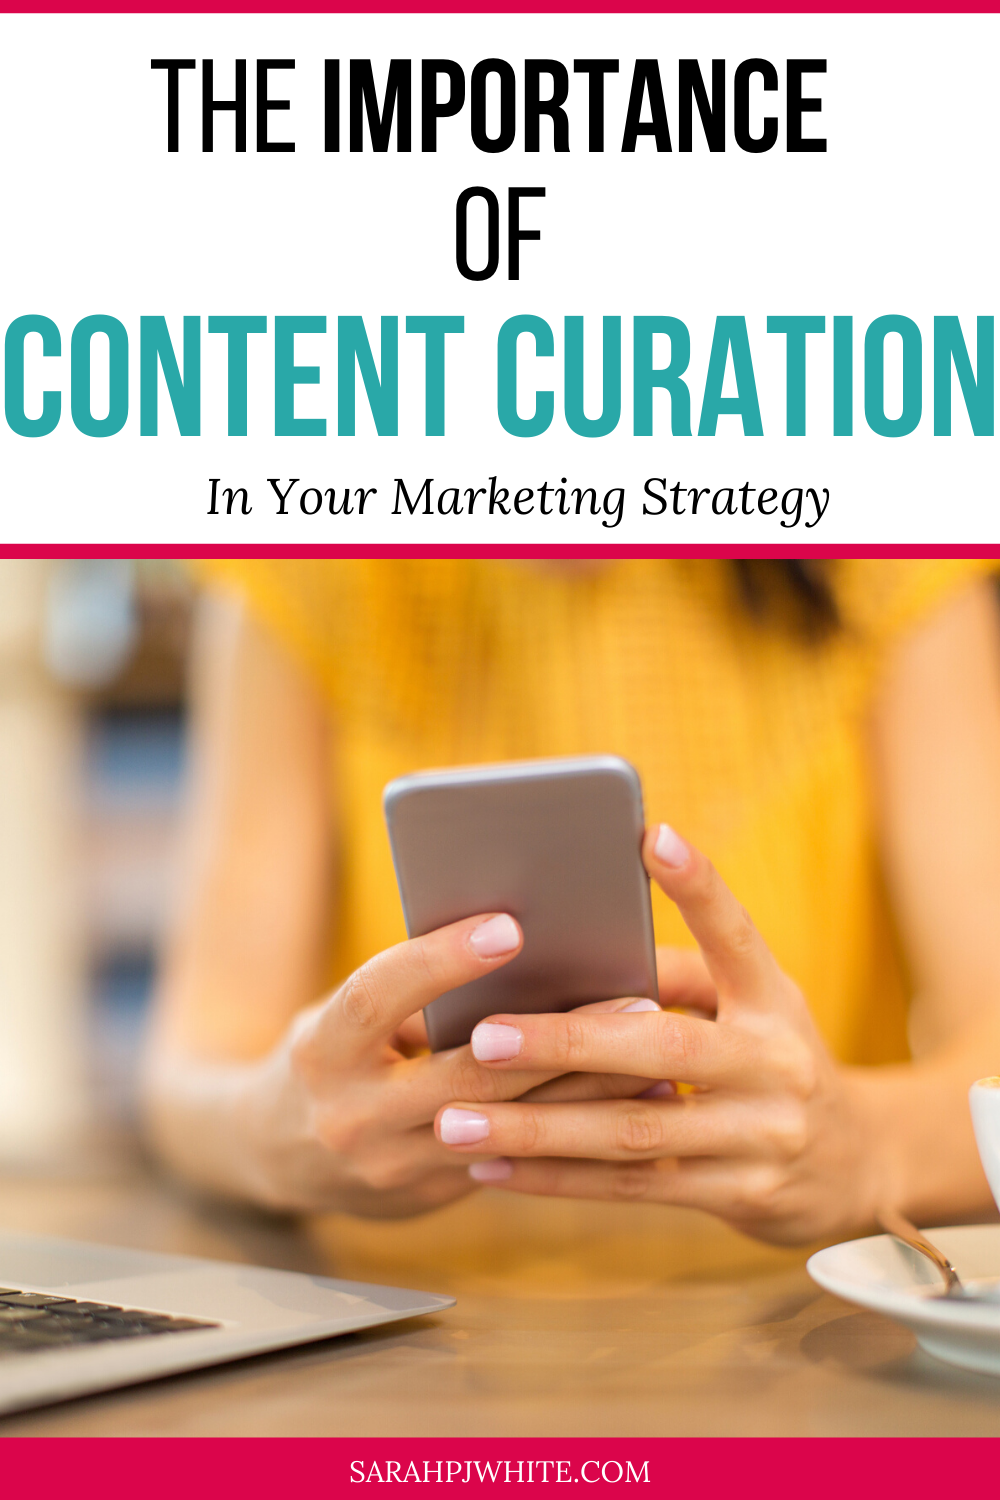 Content curation isn't something small business owners naturally think of, when it comes to improving visibility. But here's 10 reasons why they should be using it!